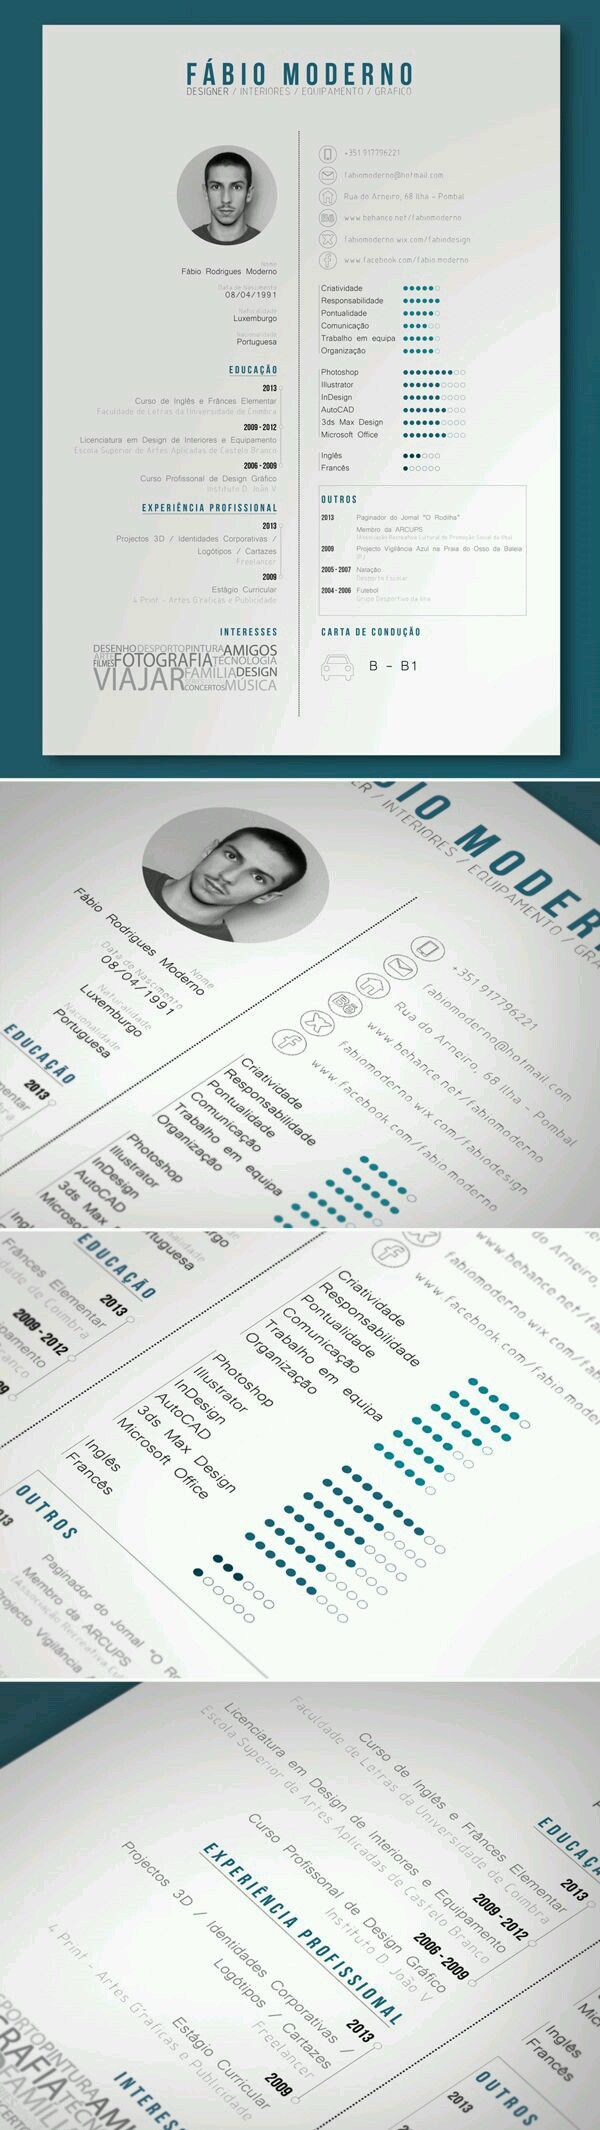 130 best CV images on Pinterest | Cv template, Resume templates and ...